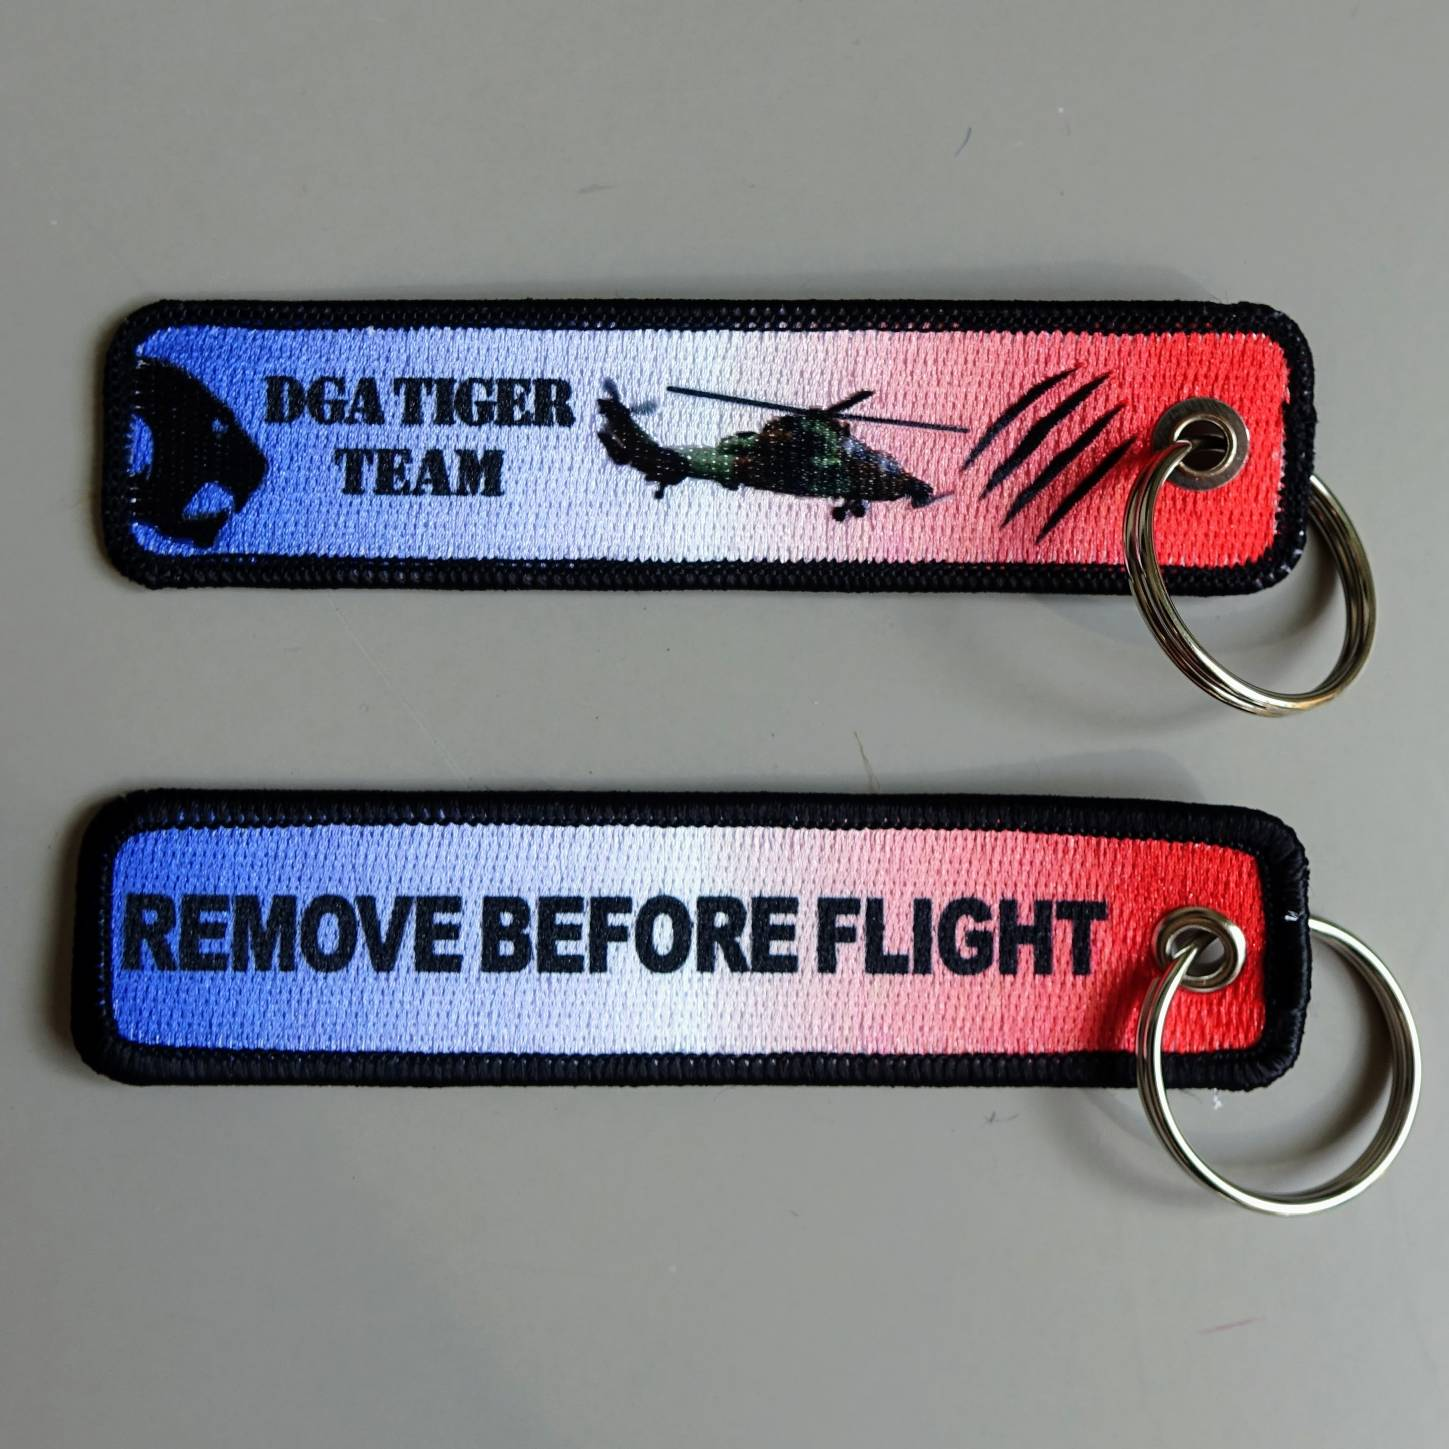 printed on embroidery key chain